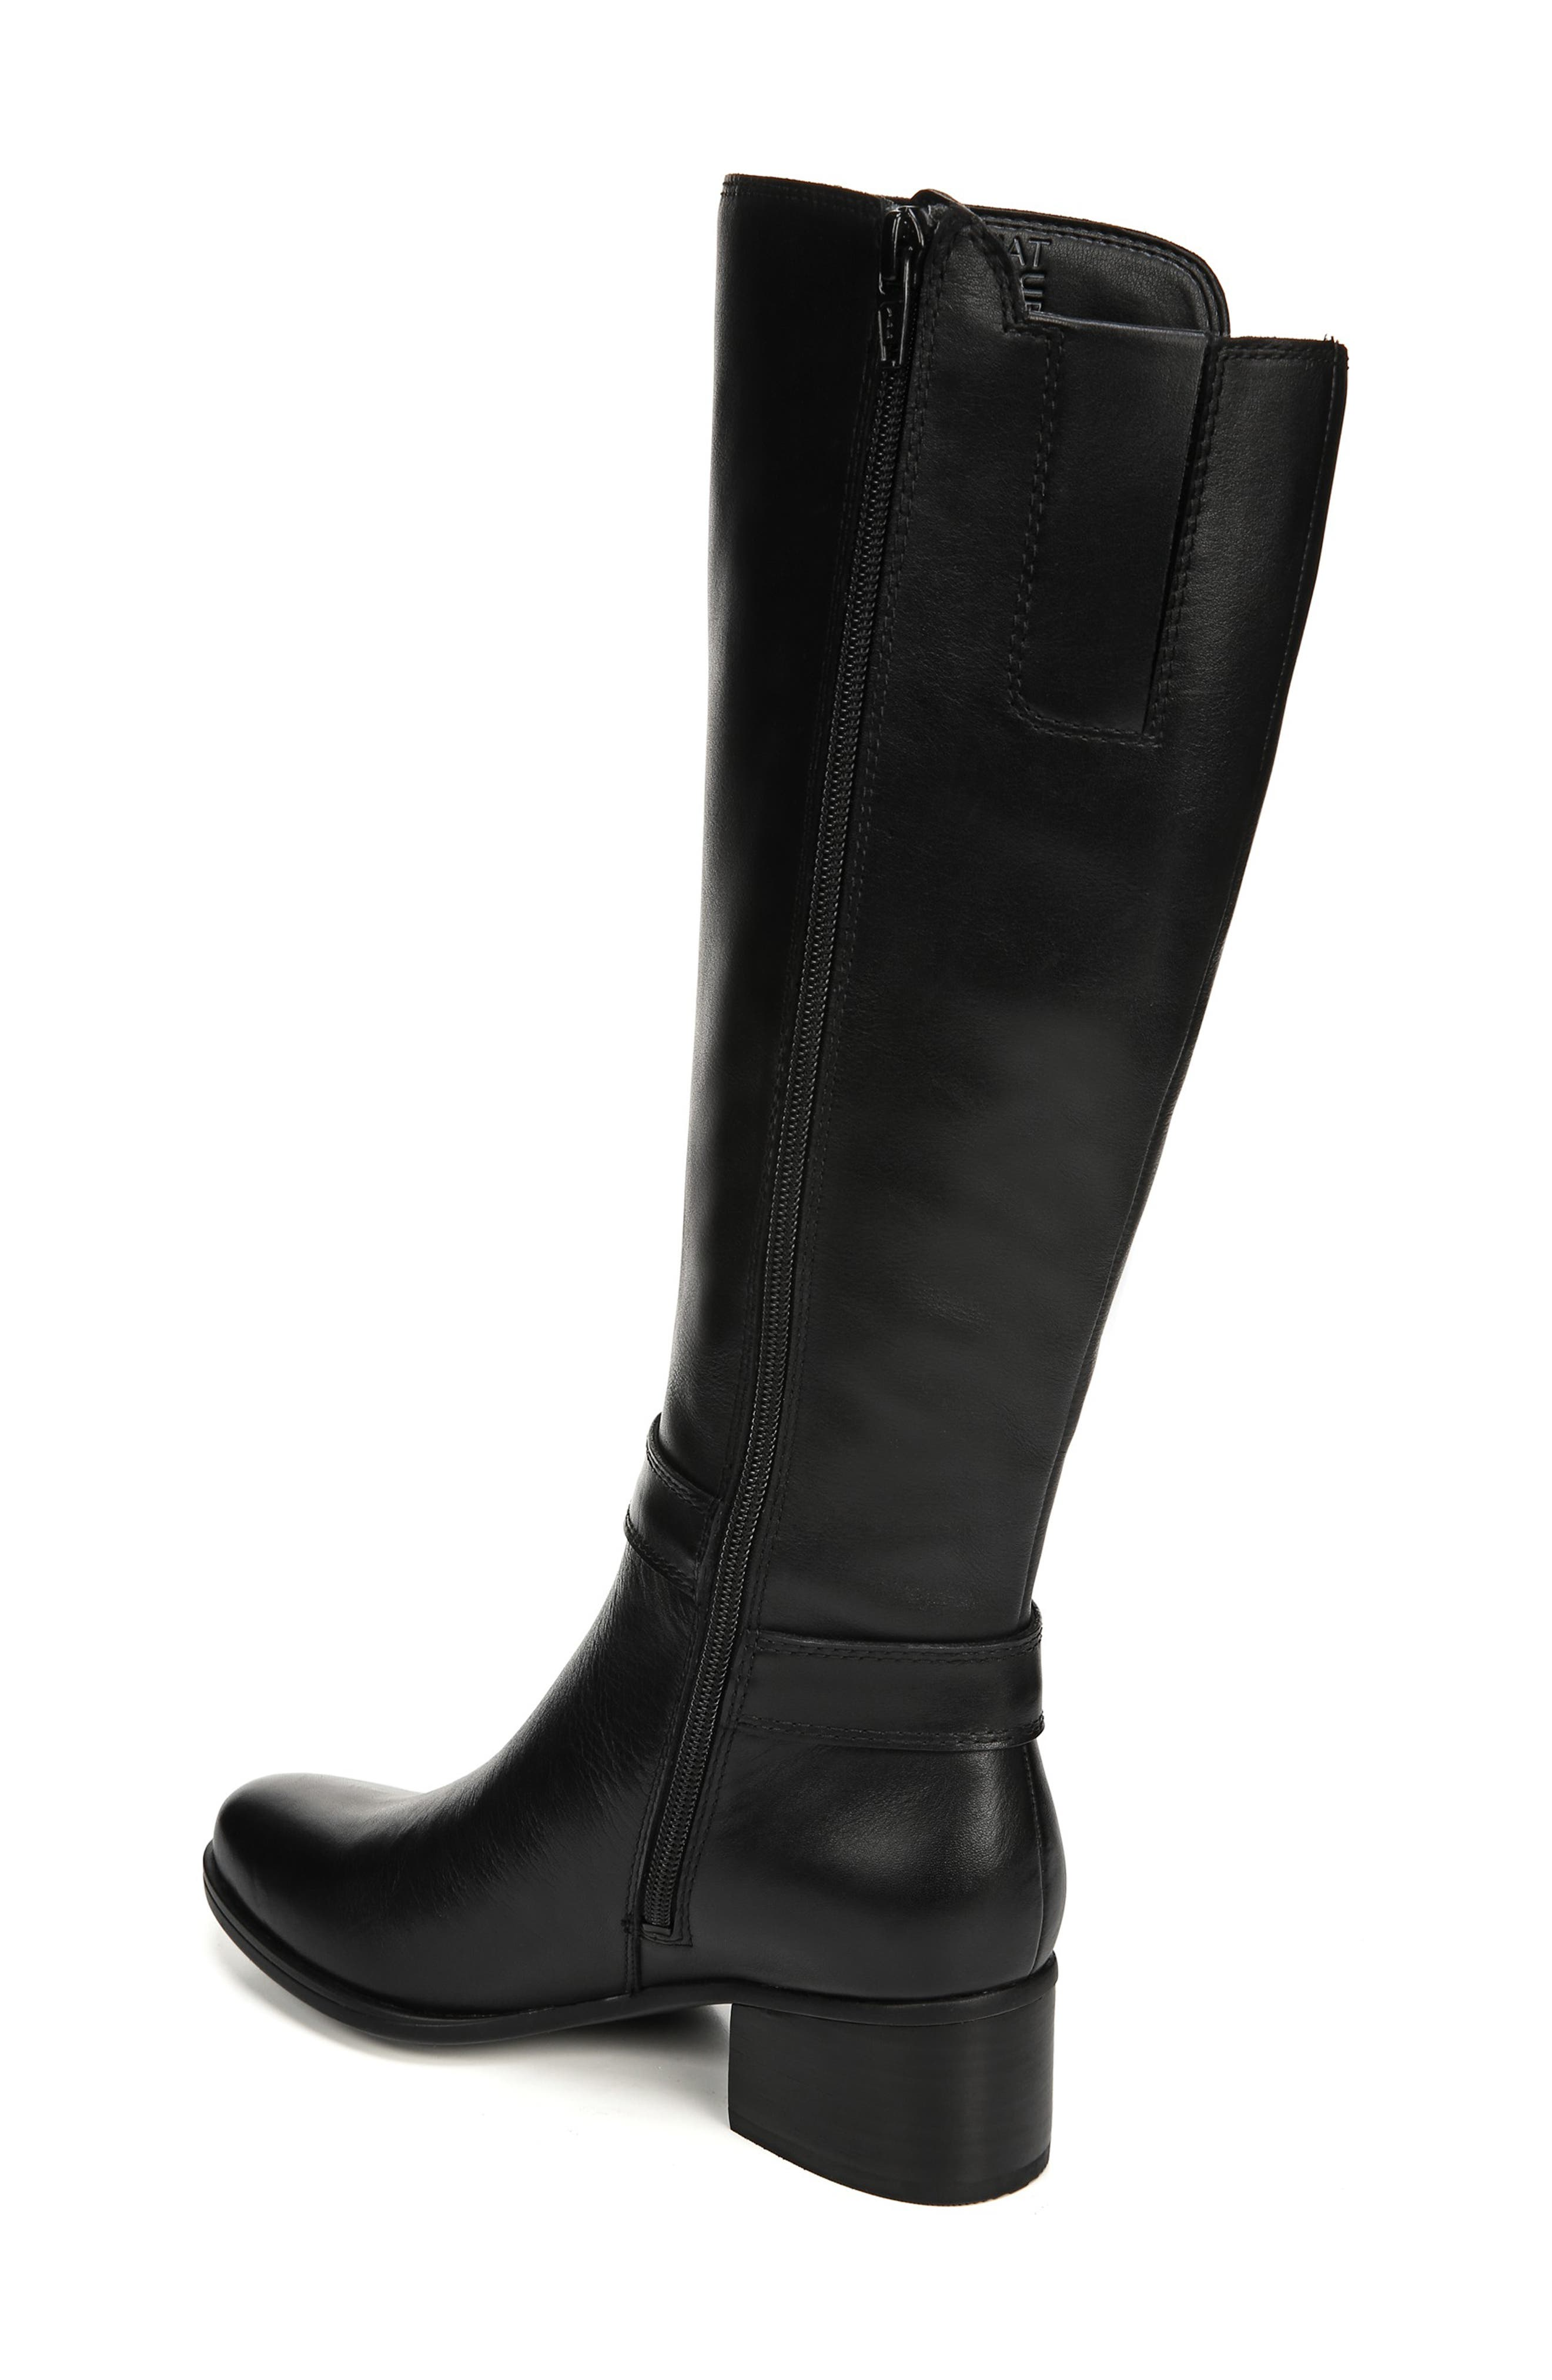 NATURALIZER, Dane Knee High Riding Boot, Alternate thumbnail 2, color, BLACK LEATHER